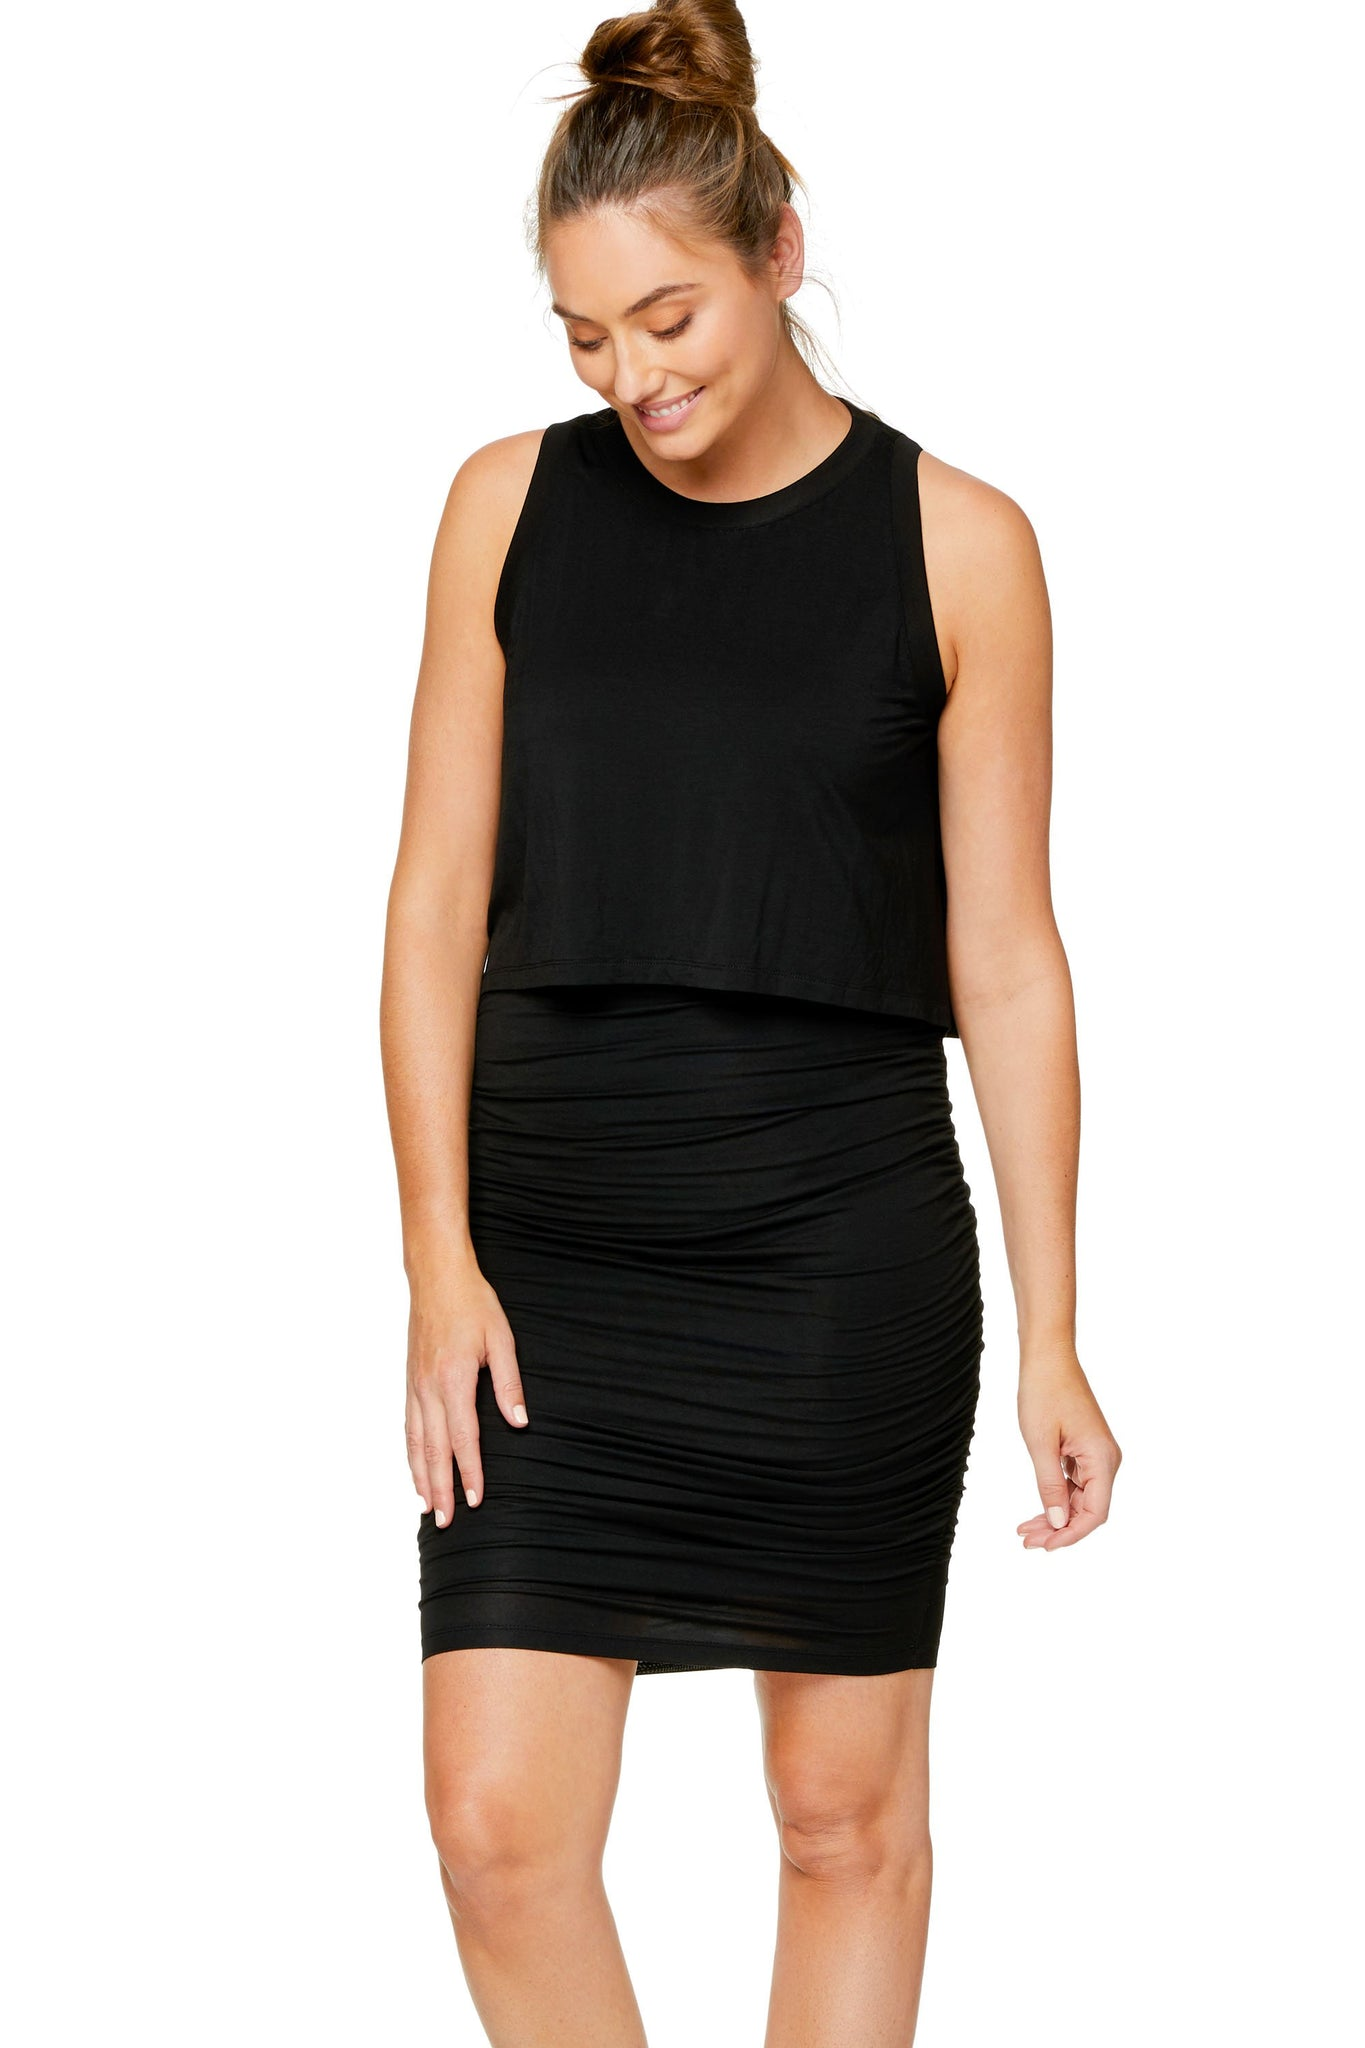 Maternity bodycon dress - Black 6